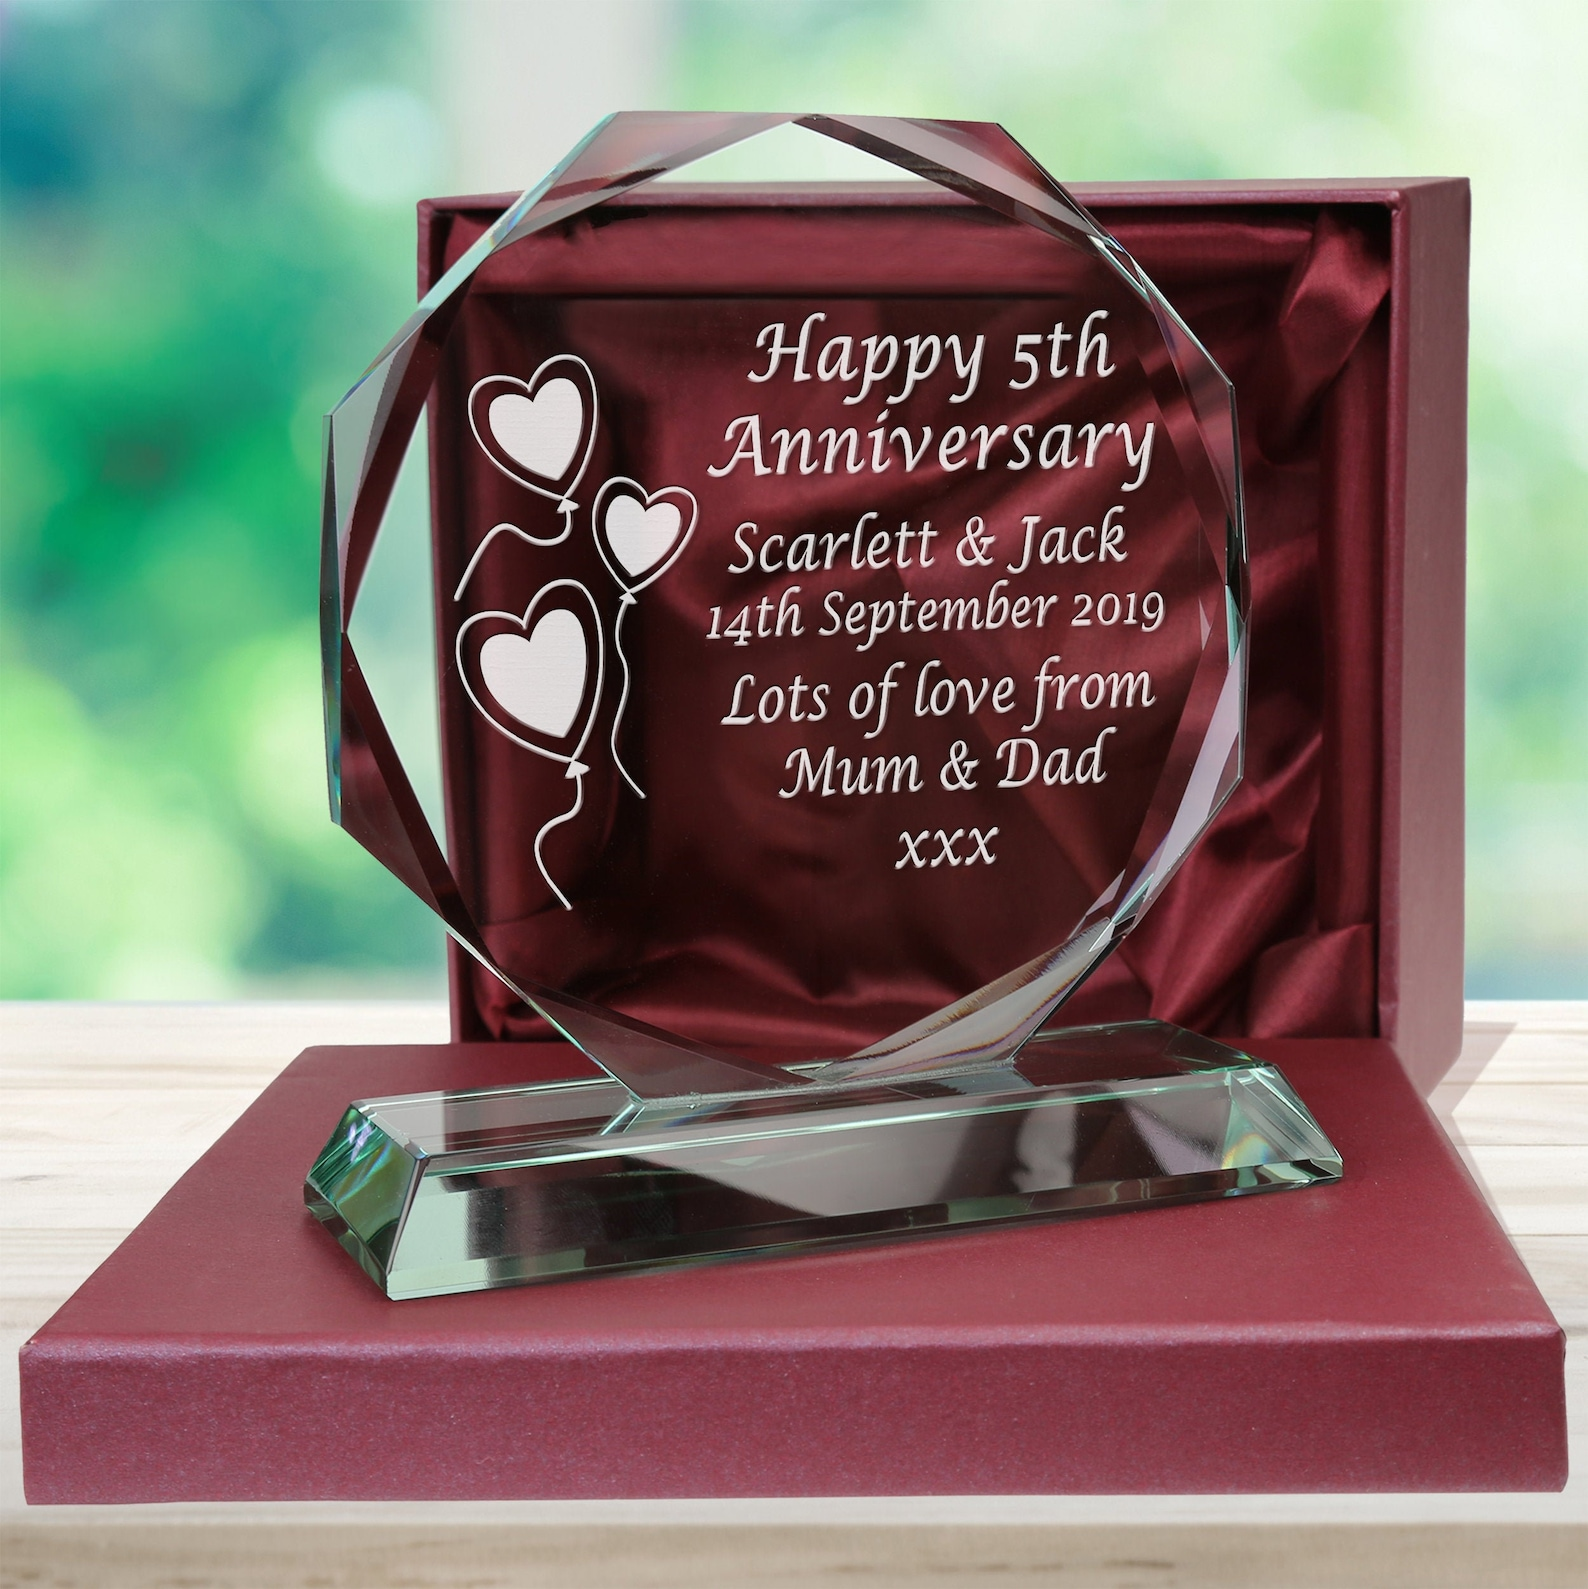 Personalised engraved cut glass